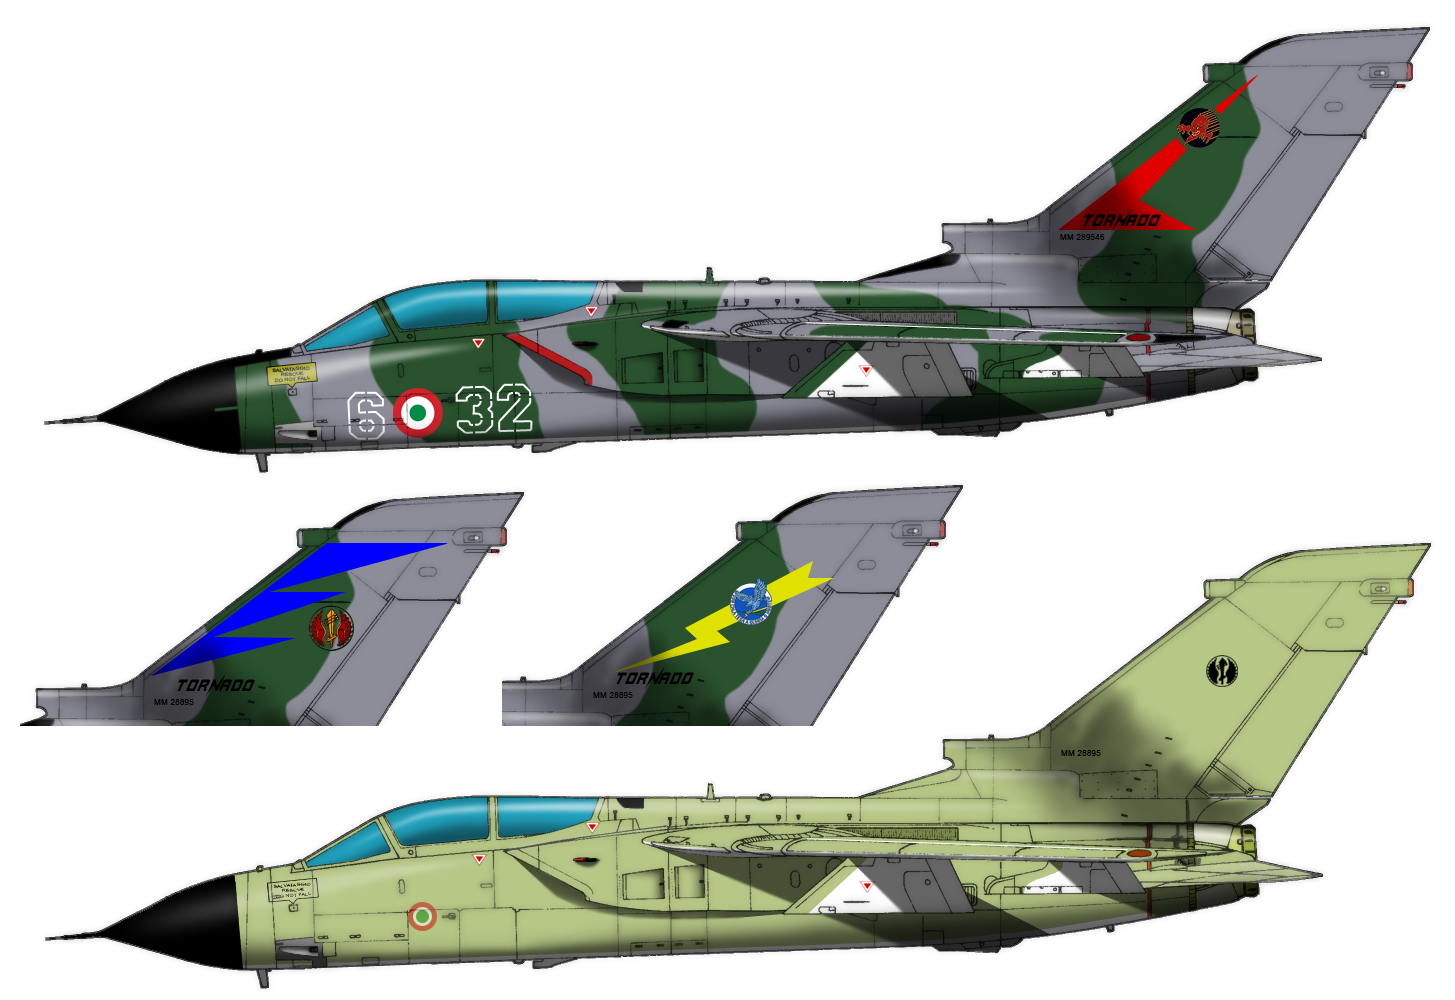 File:Italian-Tornado.png - Wikimedia Commons